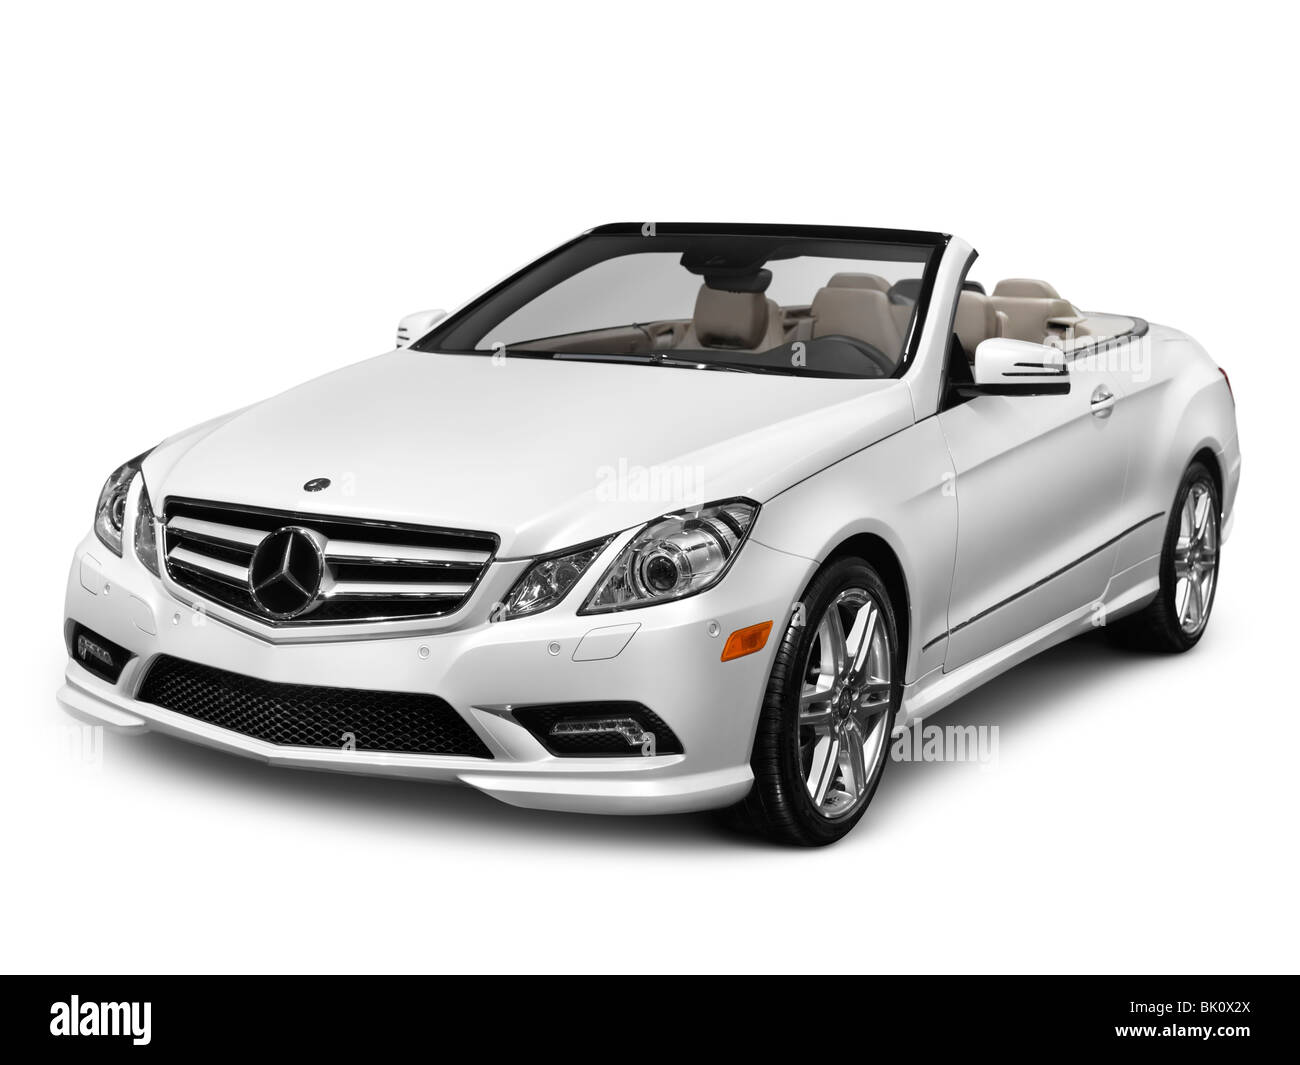 white 2011 mercedes benz e class cabriolet luxury car. Black Bedroom Furniture Sets. Home Design Ideas